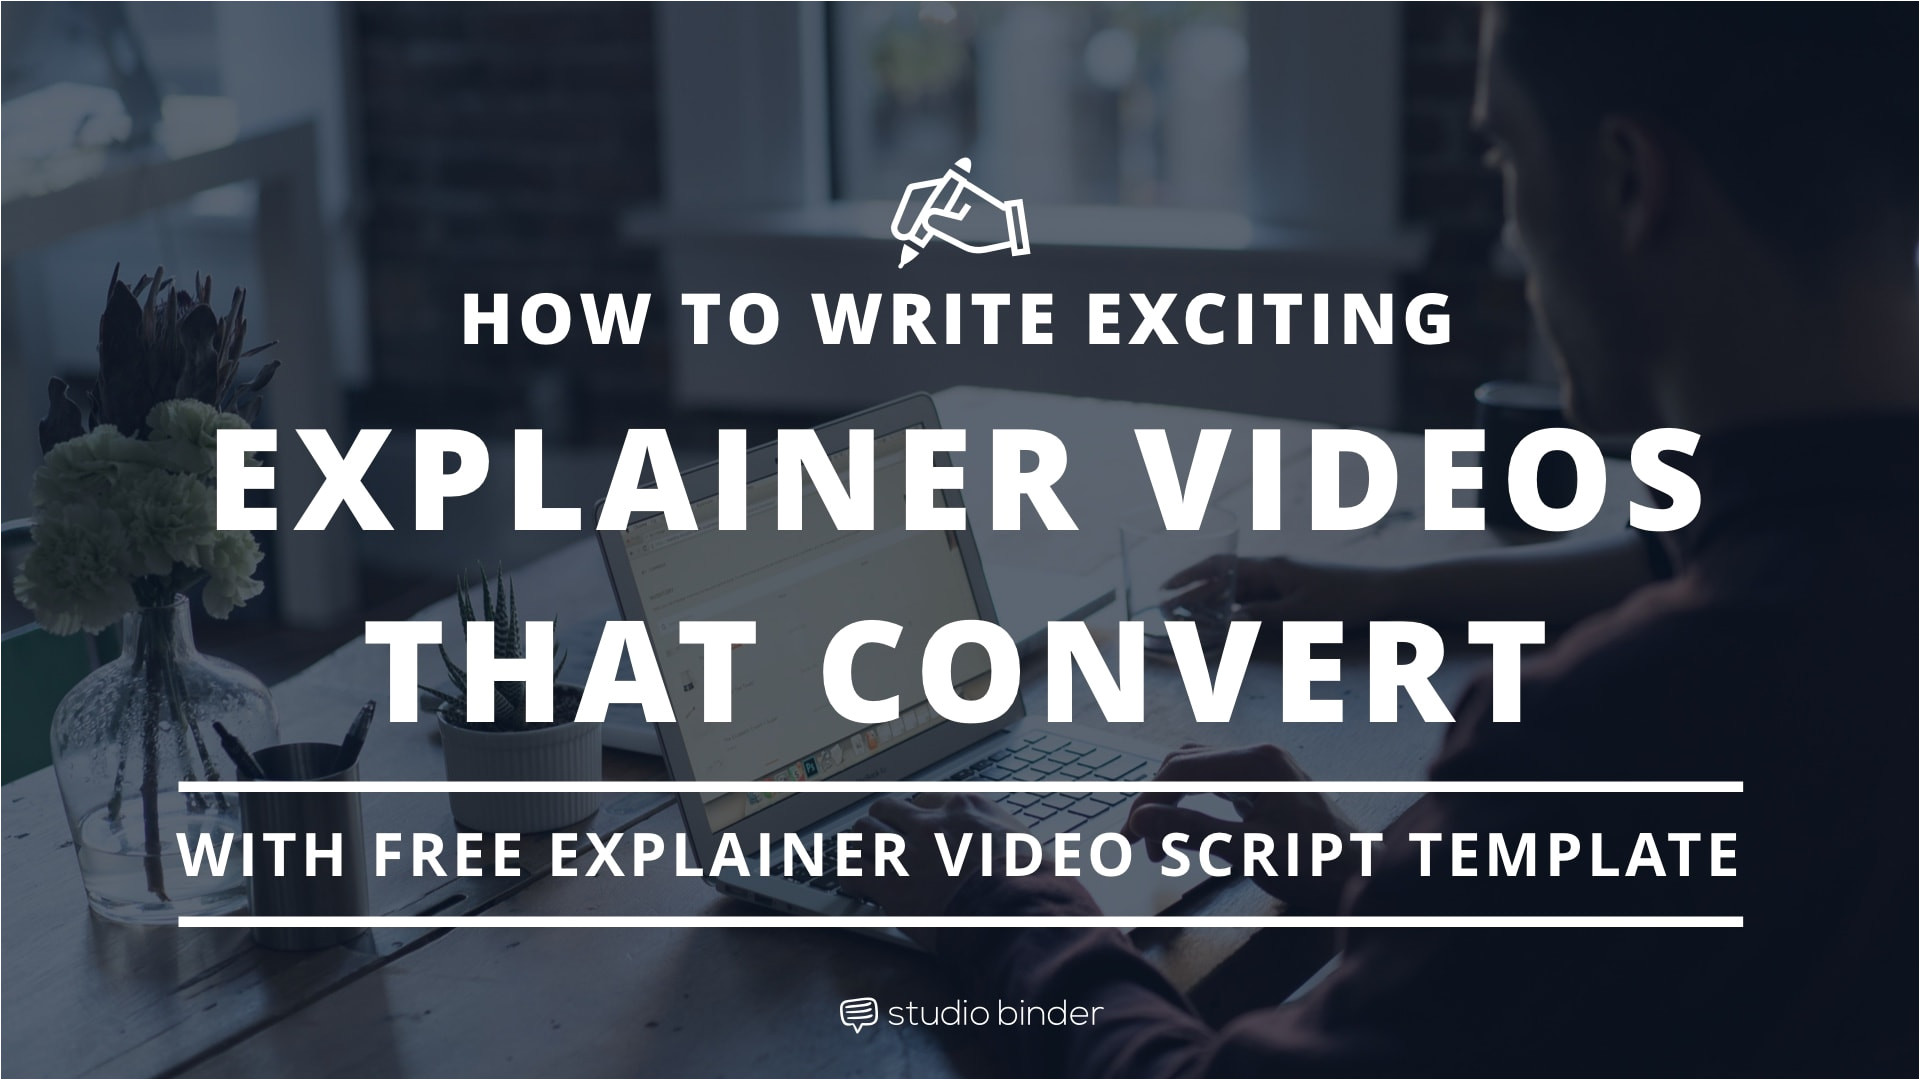 how to write exciting explainer videos that convert with free explainer video script template